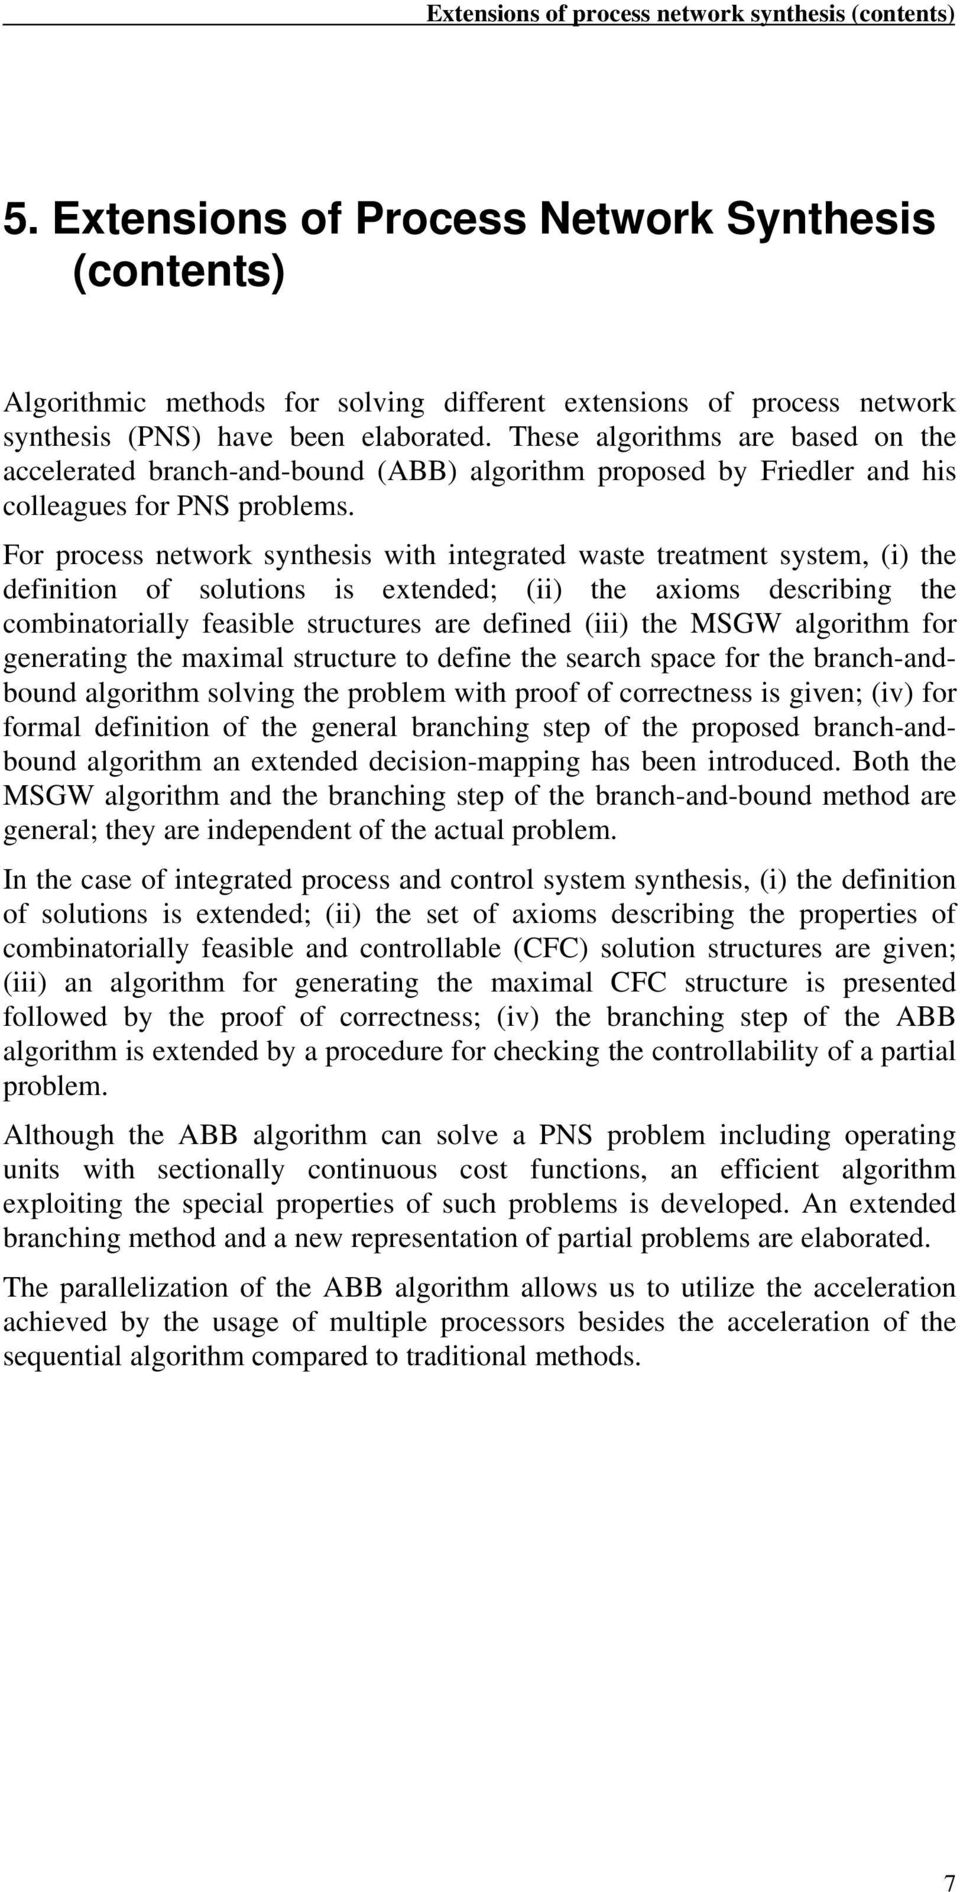 These algorithms are based on the accelerated branch-and-bound (ABB) algorithm proposed by Friedler and his colleagues for PNS problems.